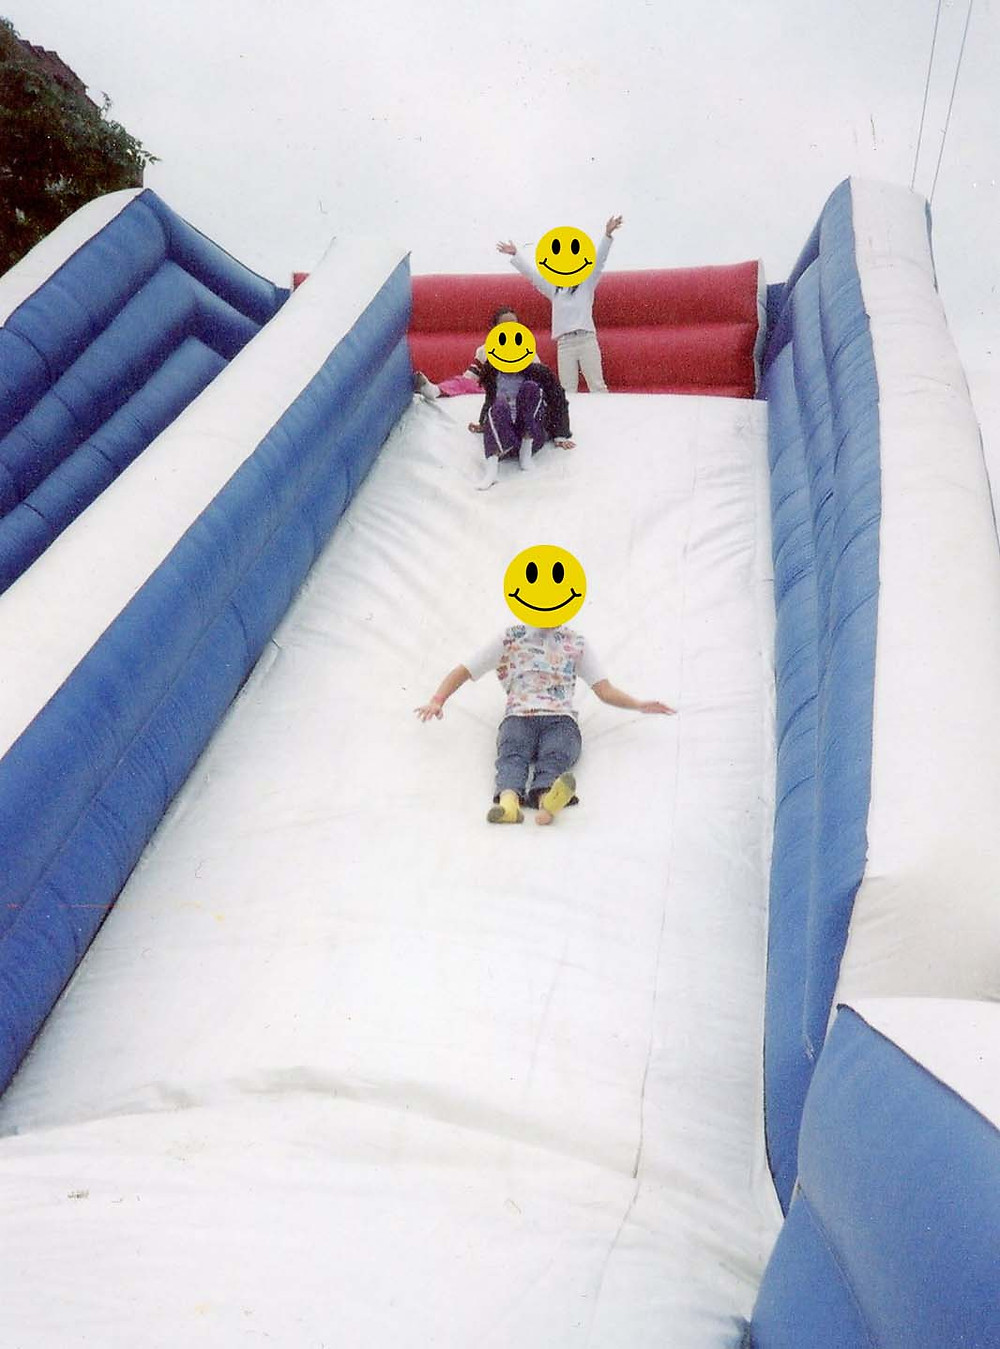 collage of three children going down an inflatable slide with smiley face stickers over their faces